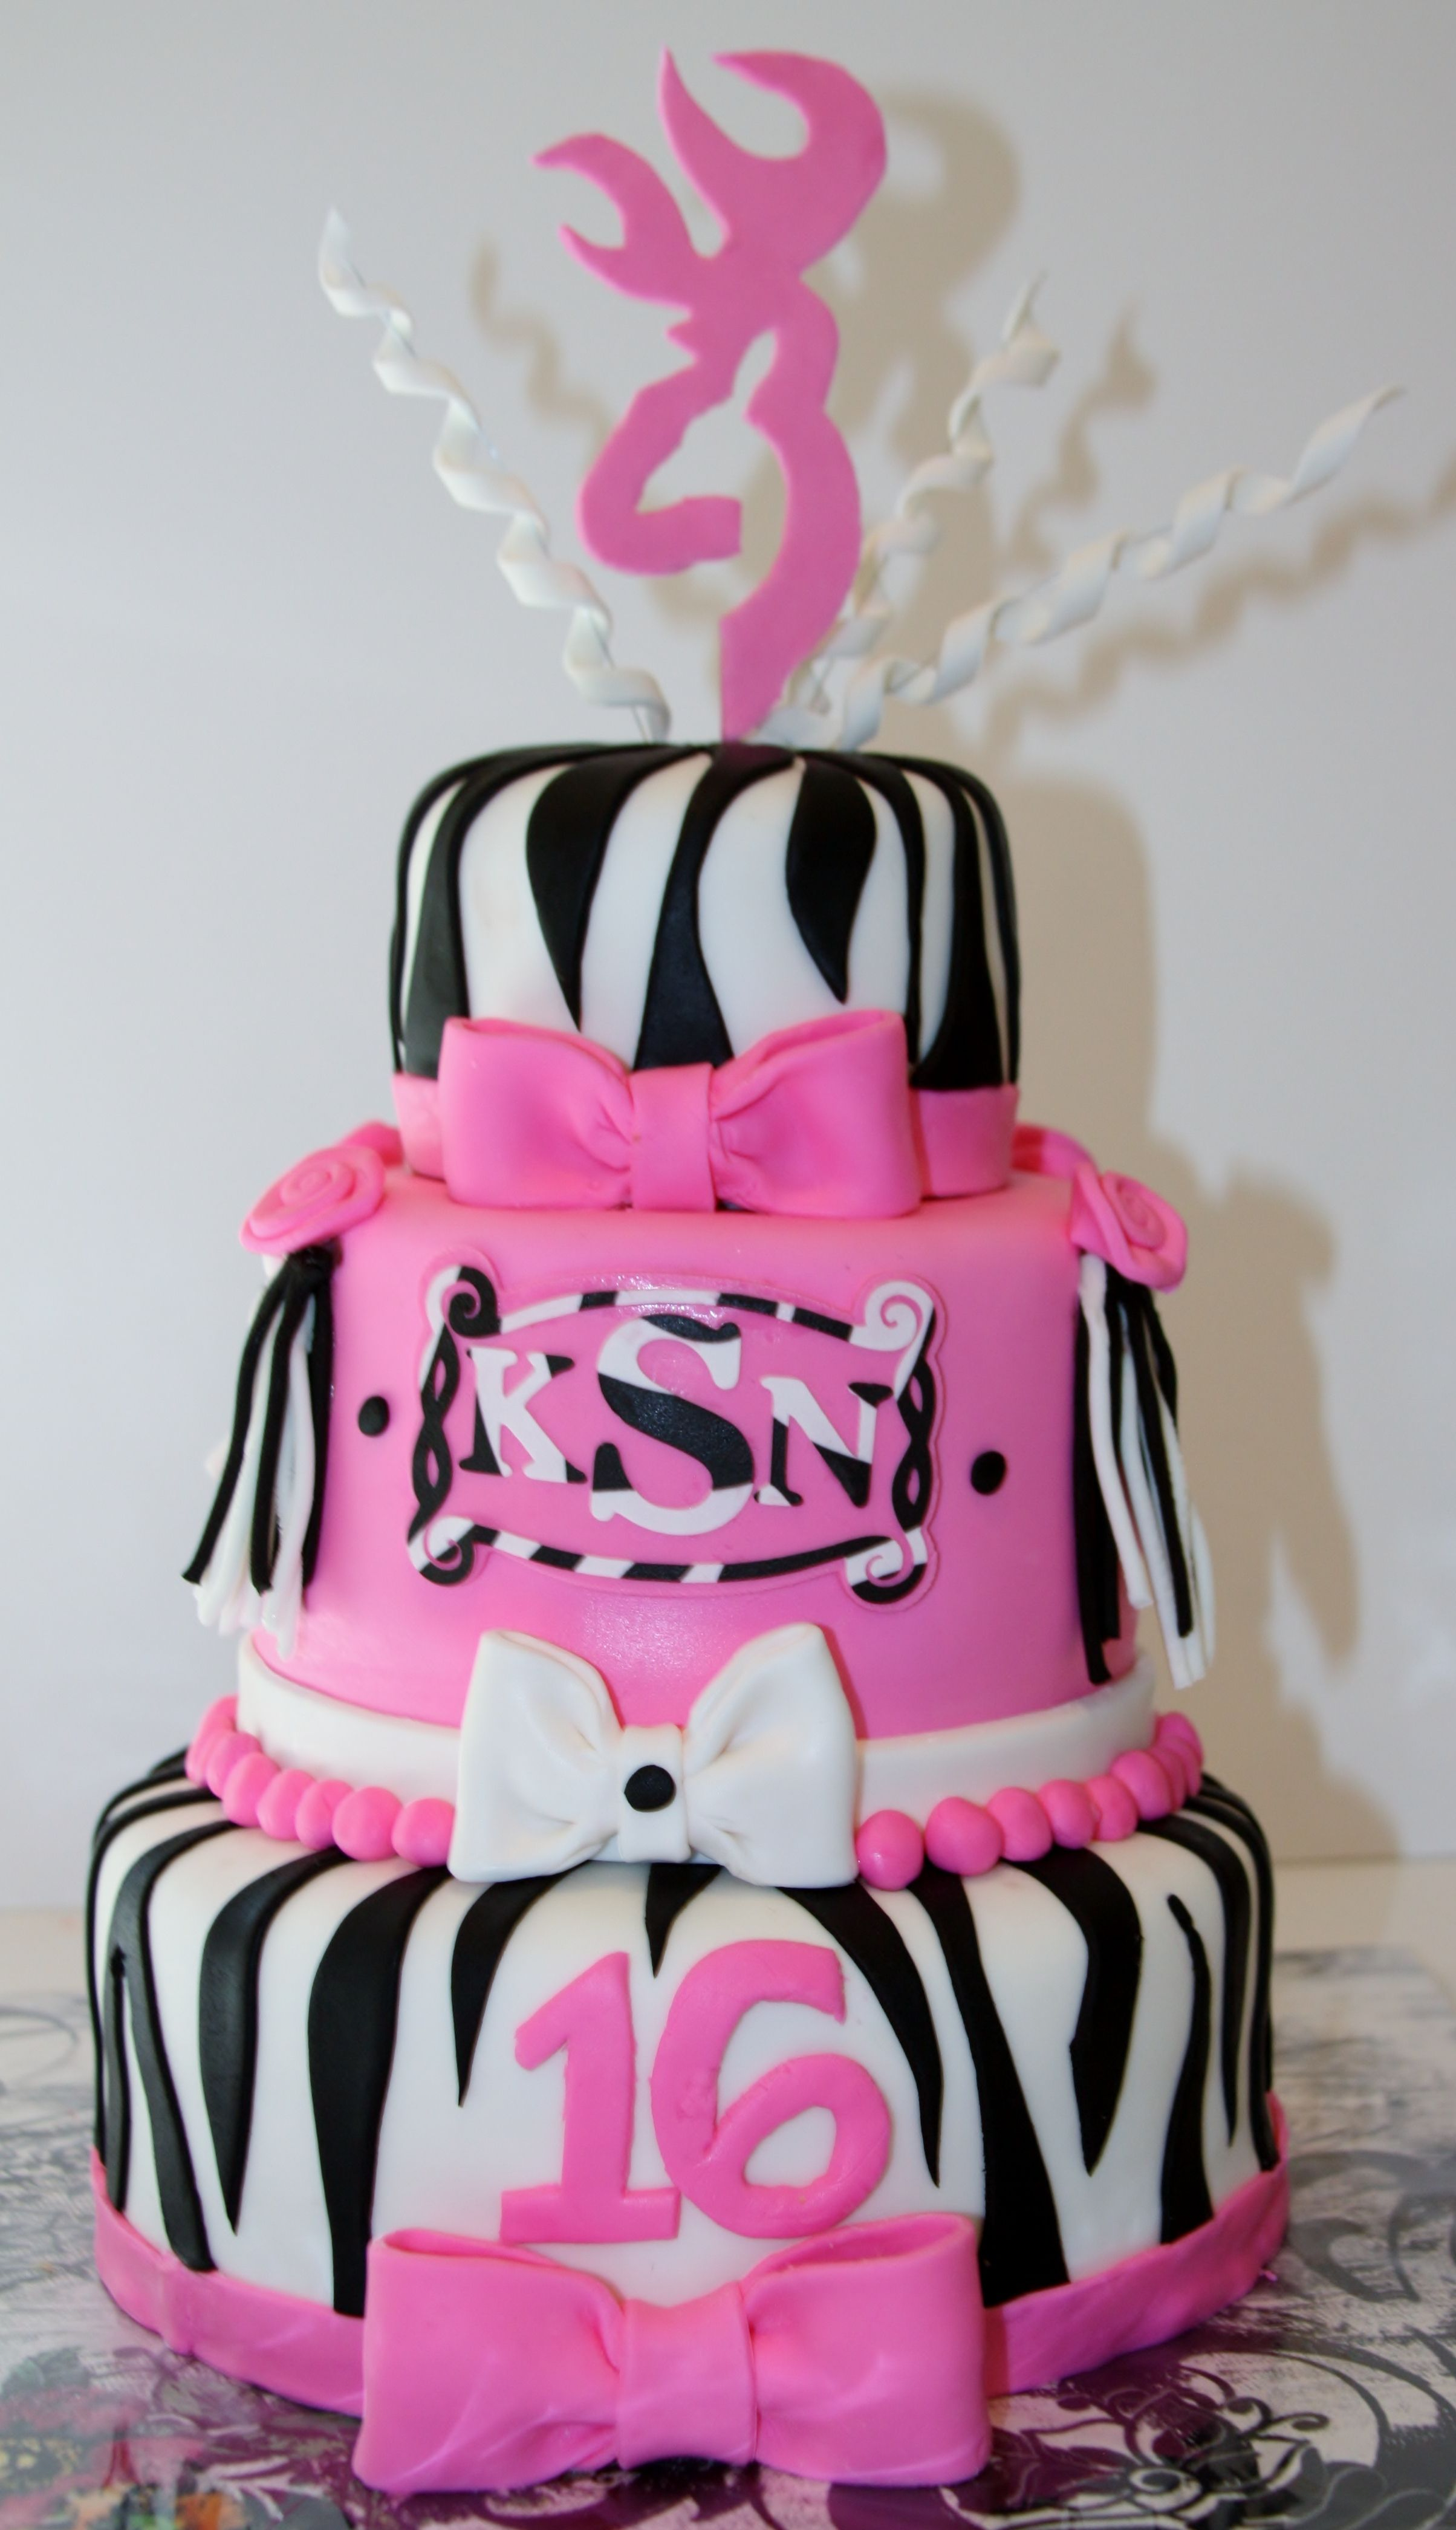 Browning Country Girl Wallpaper Girly Mixed With A Little Tomboy A Sweet 16 Cake For